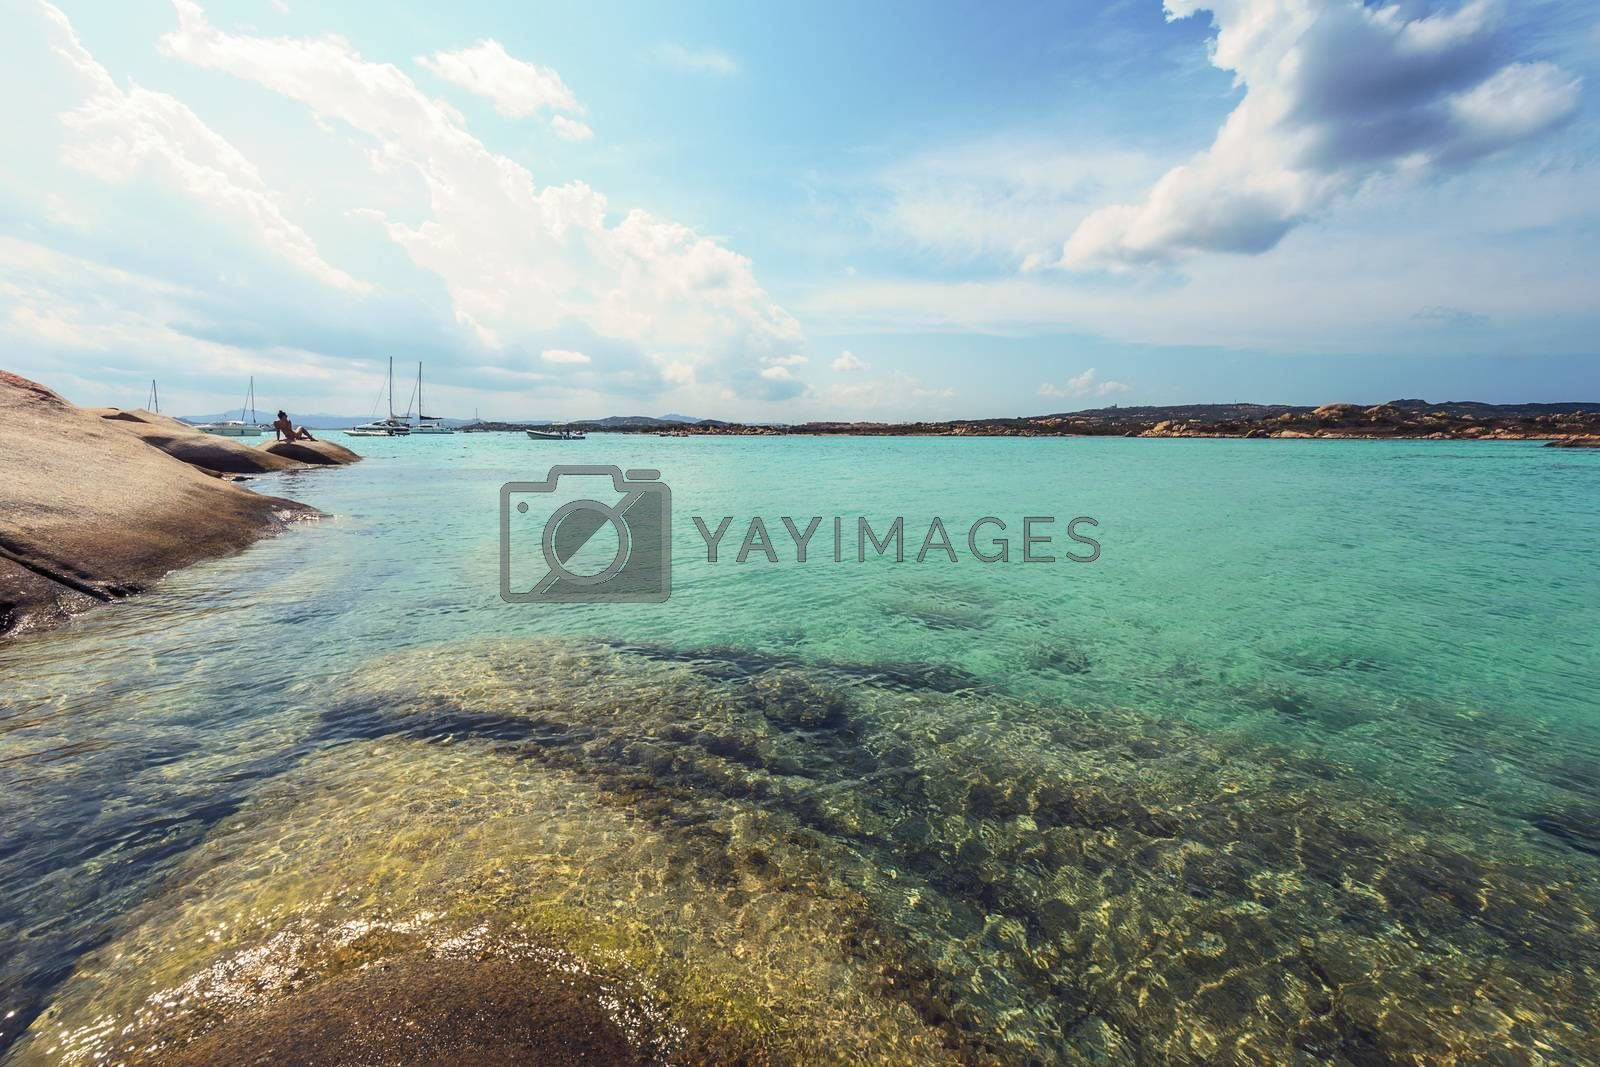 Turquoise waters of the beaches of Sardinia by raulmellado